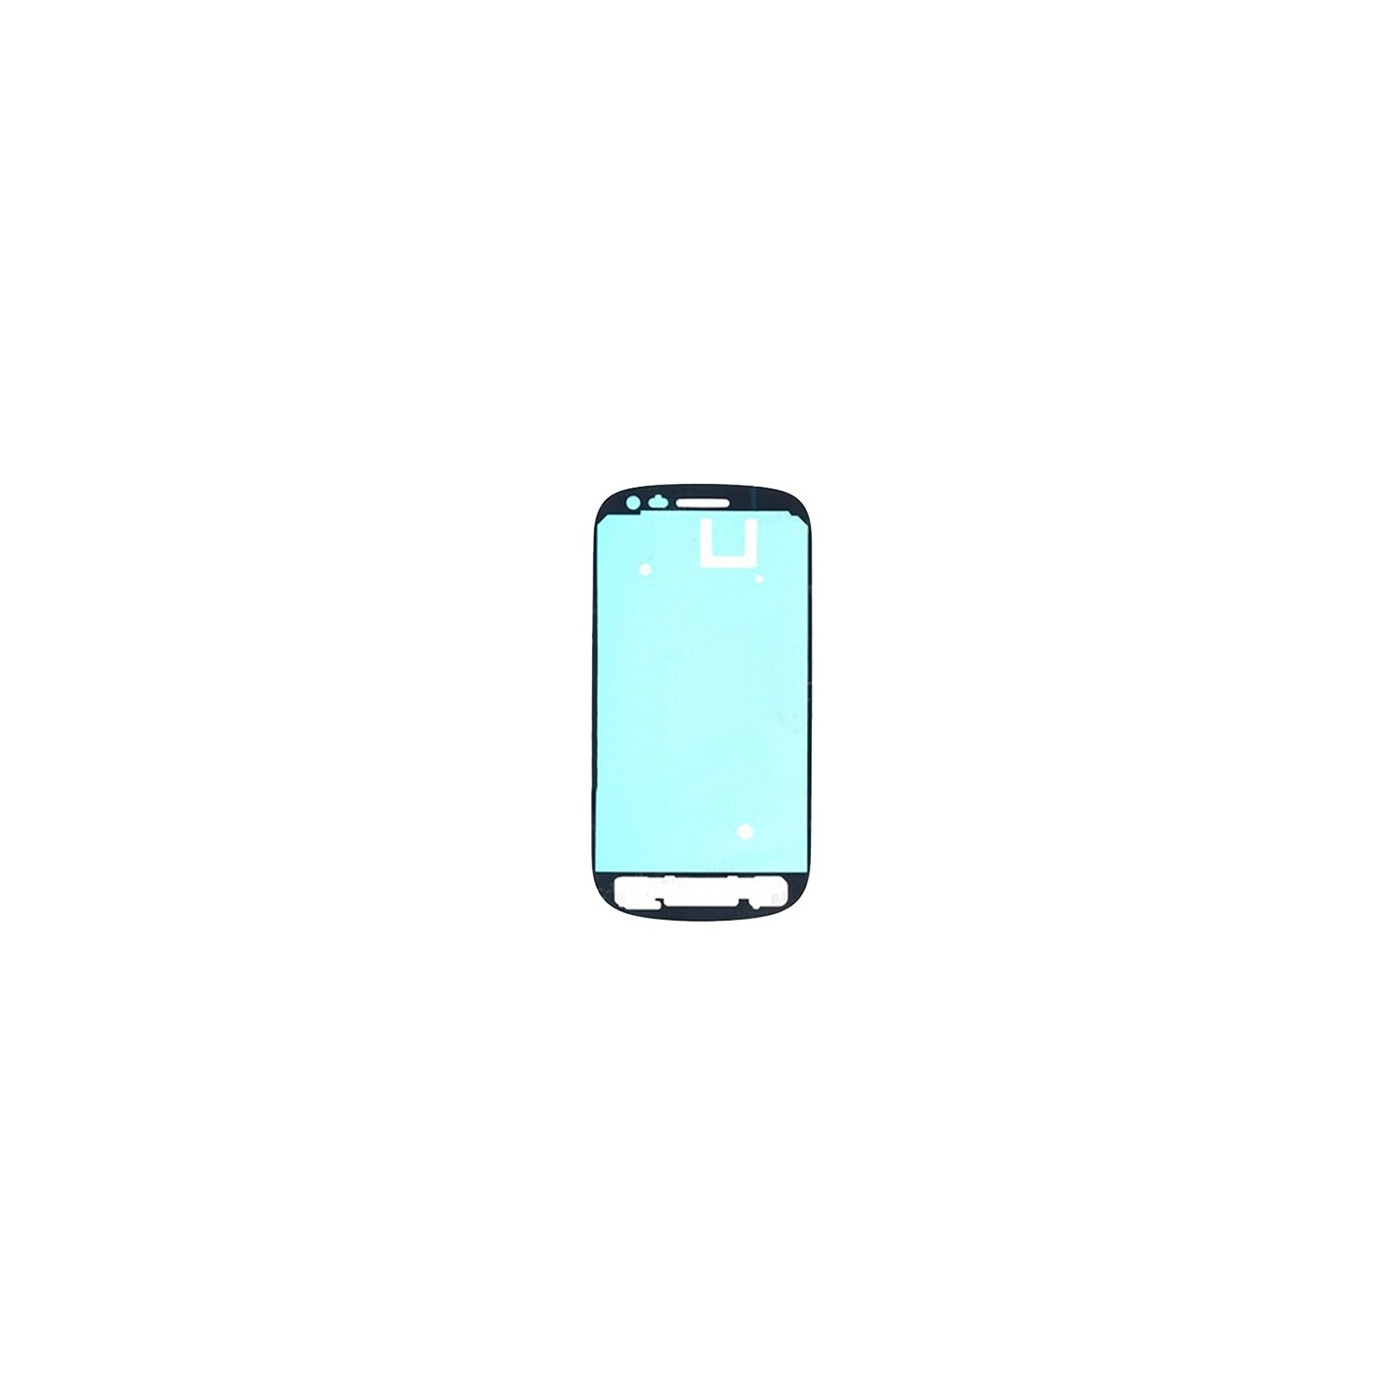 Double Sided Glass Galaxy S3 mini i8190 touch screen display sticker